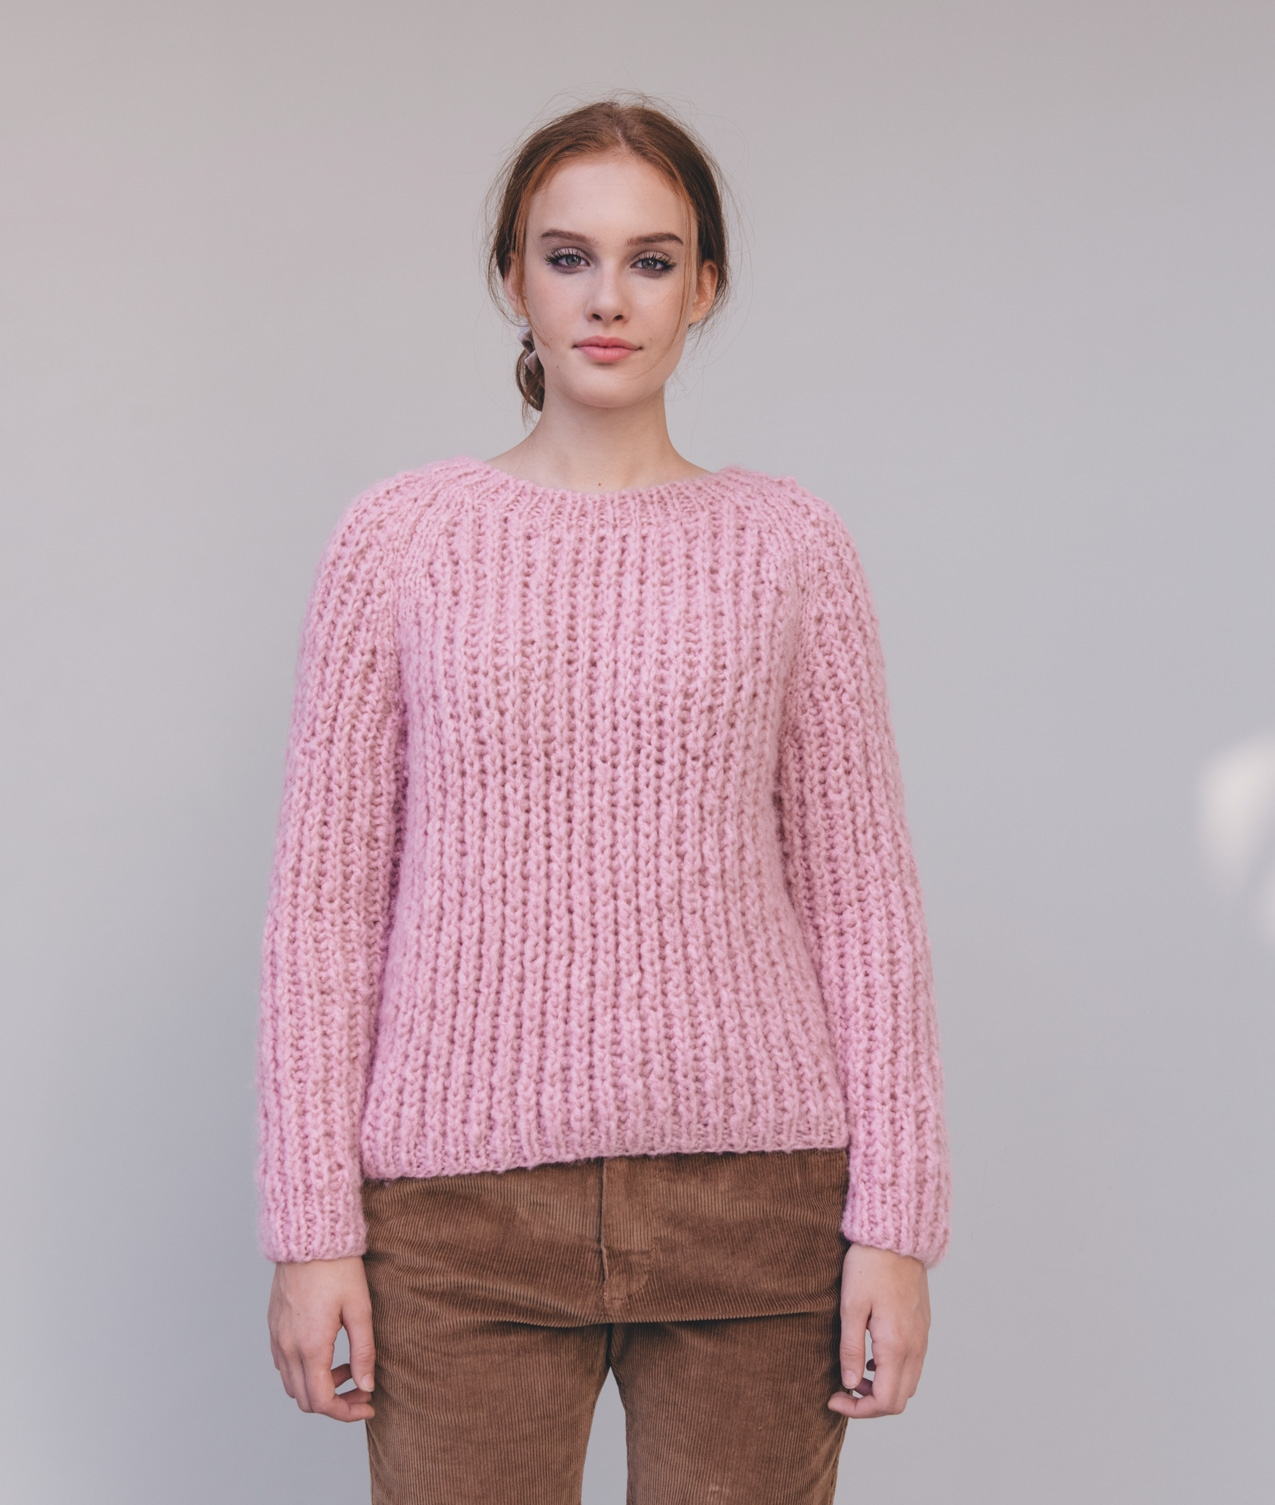 Fall / Winter 2018-19 Collection - Collections - MARSHMALLOW SWEATER - 1